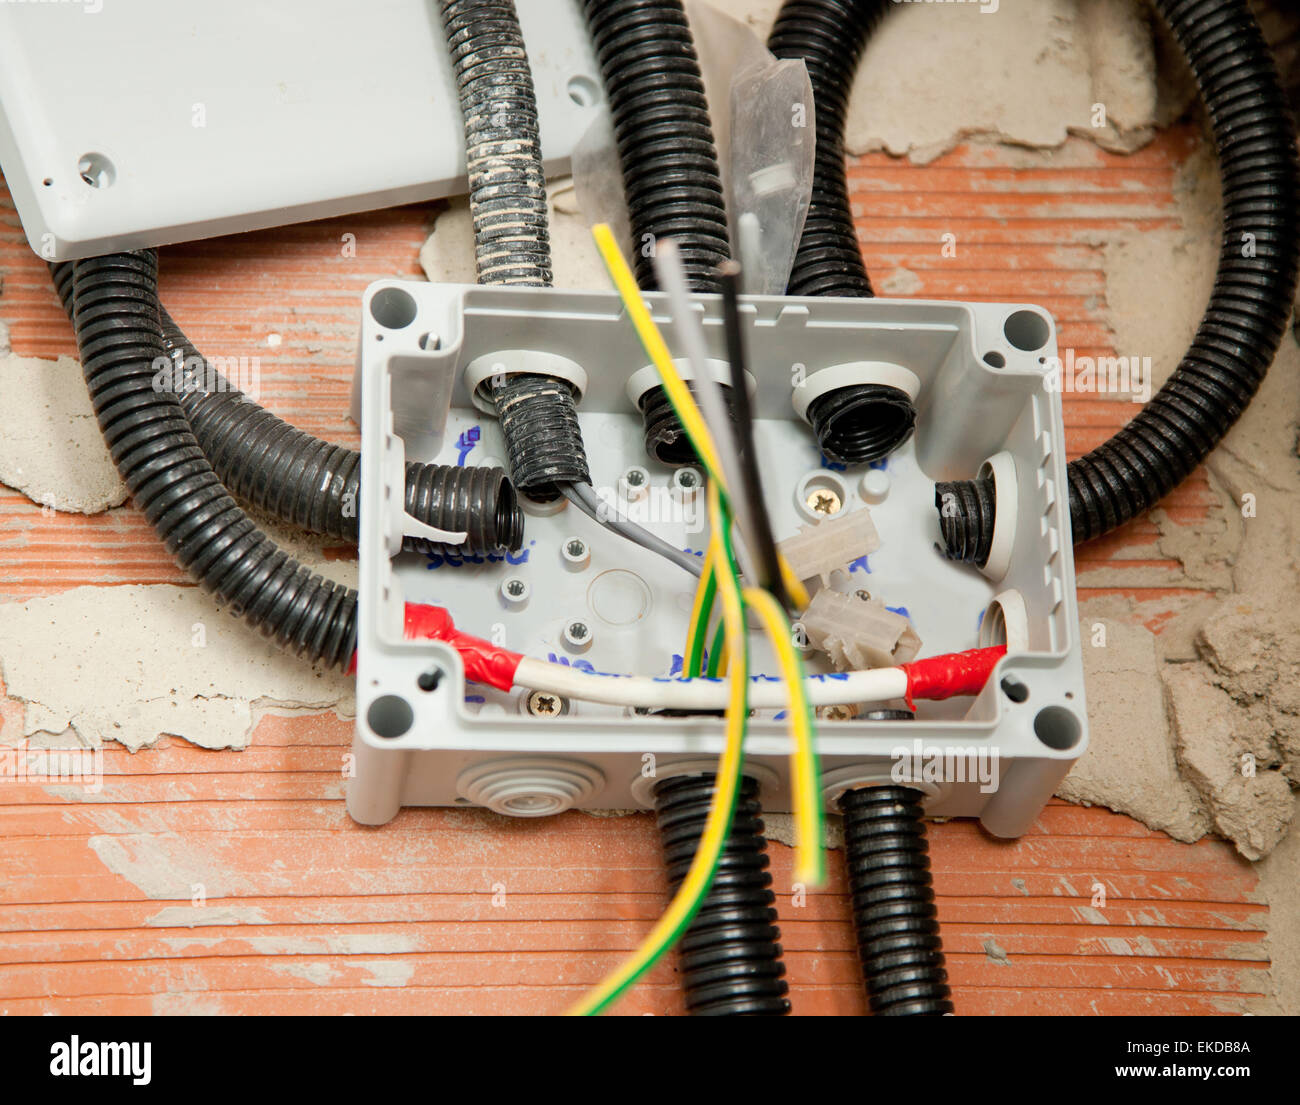 Electrical Coil Conduit Pipe On Box Embedded In Wall Stock Photo Alamy